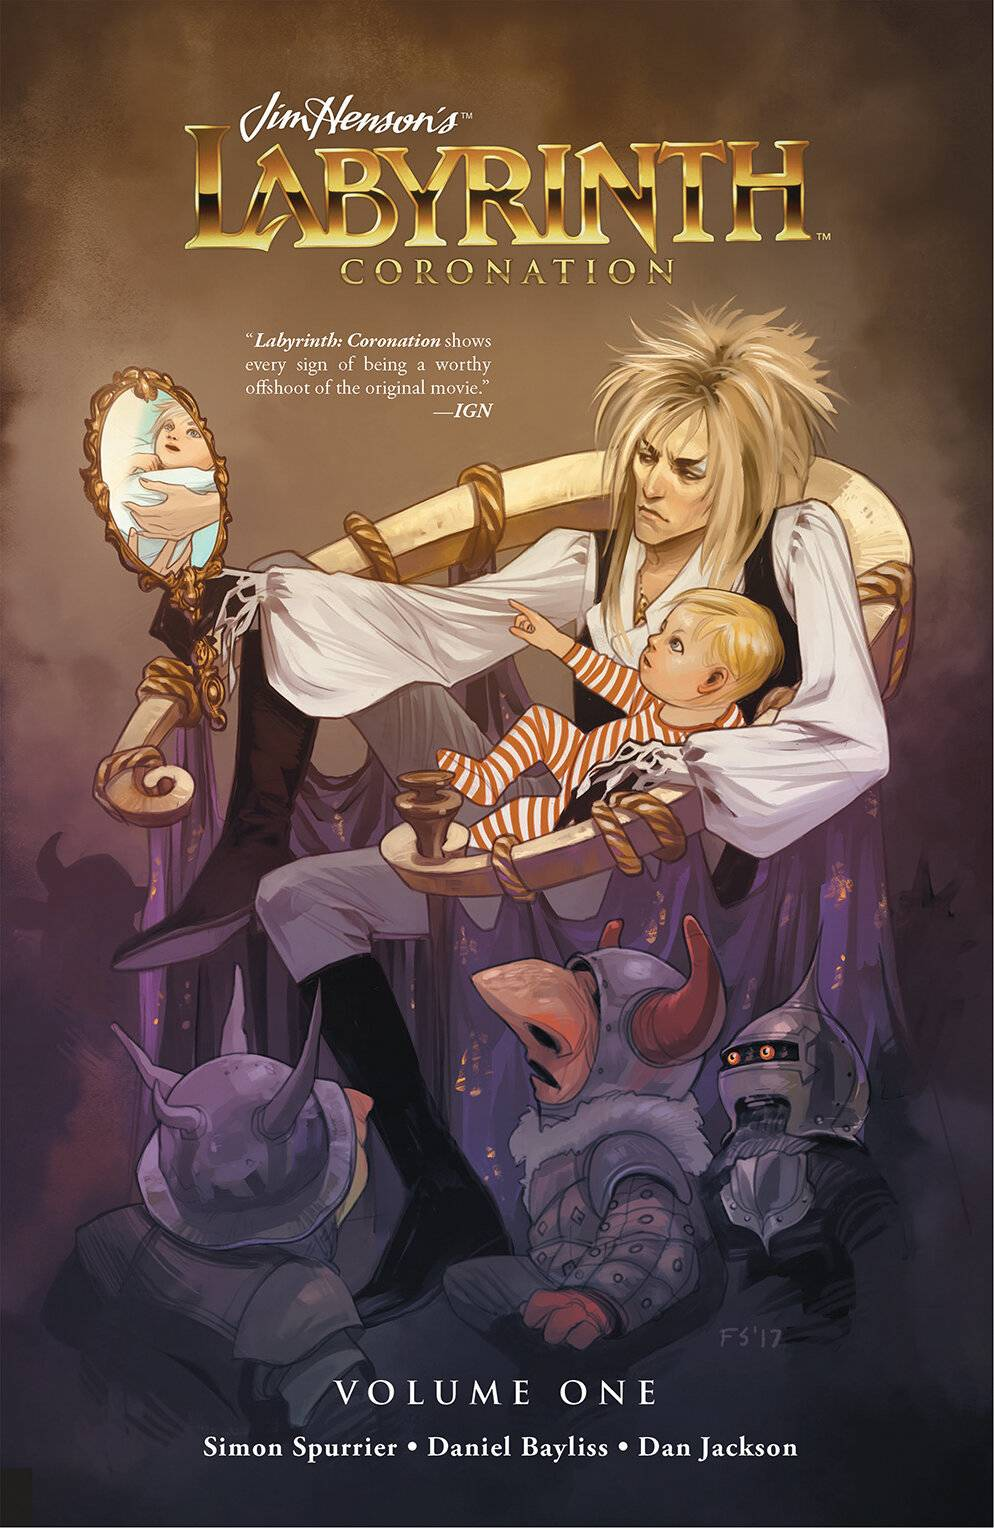 JIM HENSON LABYRINTH CORONATION TP VOL 01